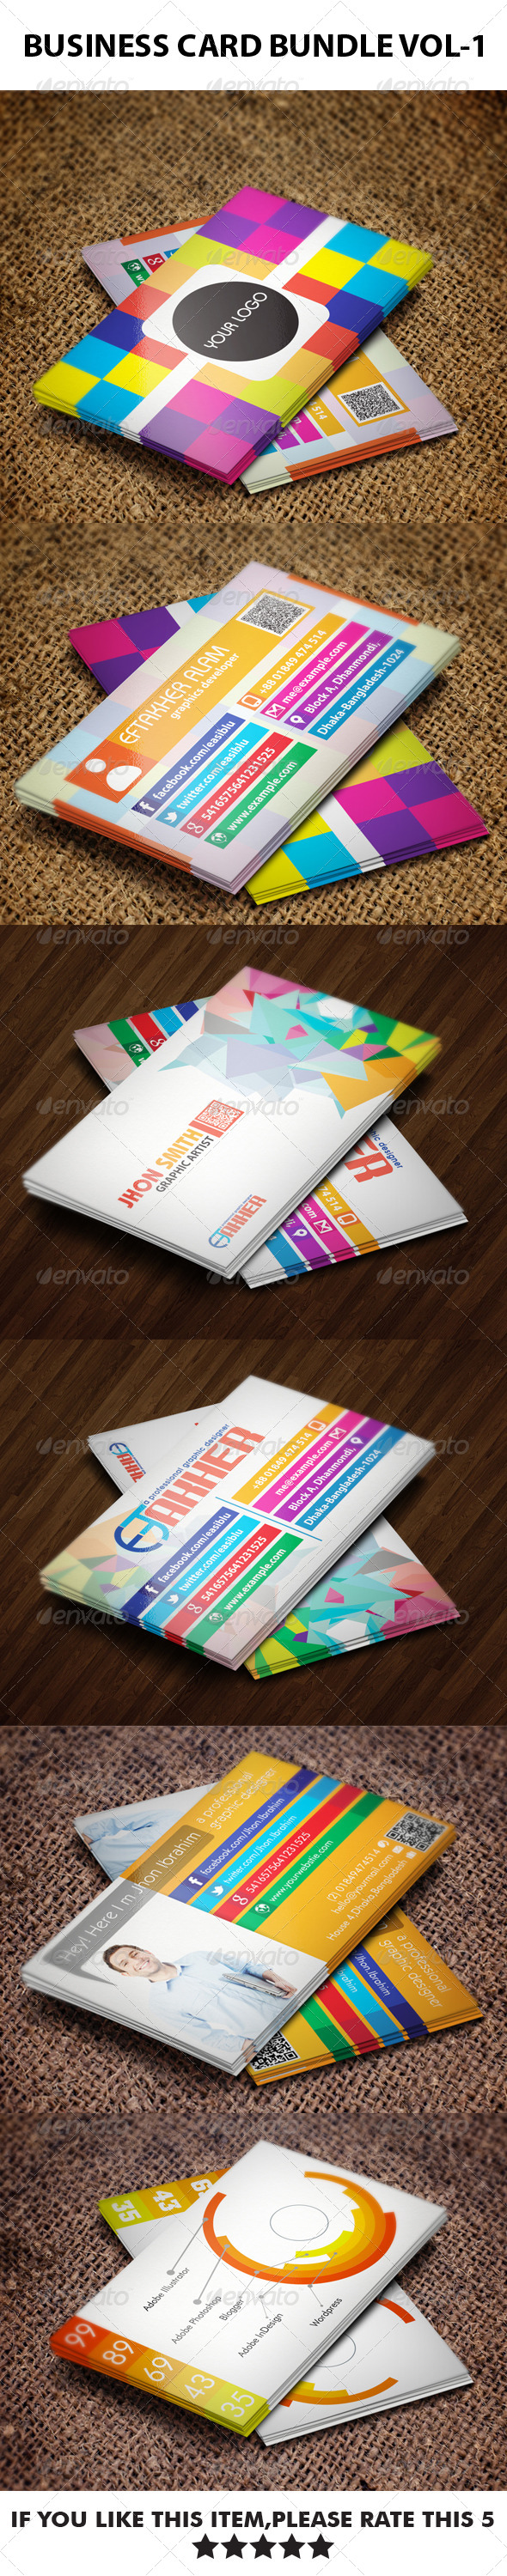 GraphicRiver 3 in 1 Business Cards Bundle VOL-1 5968783